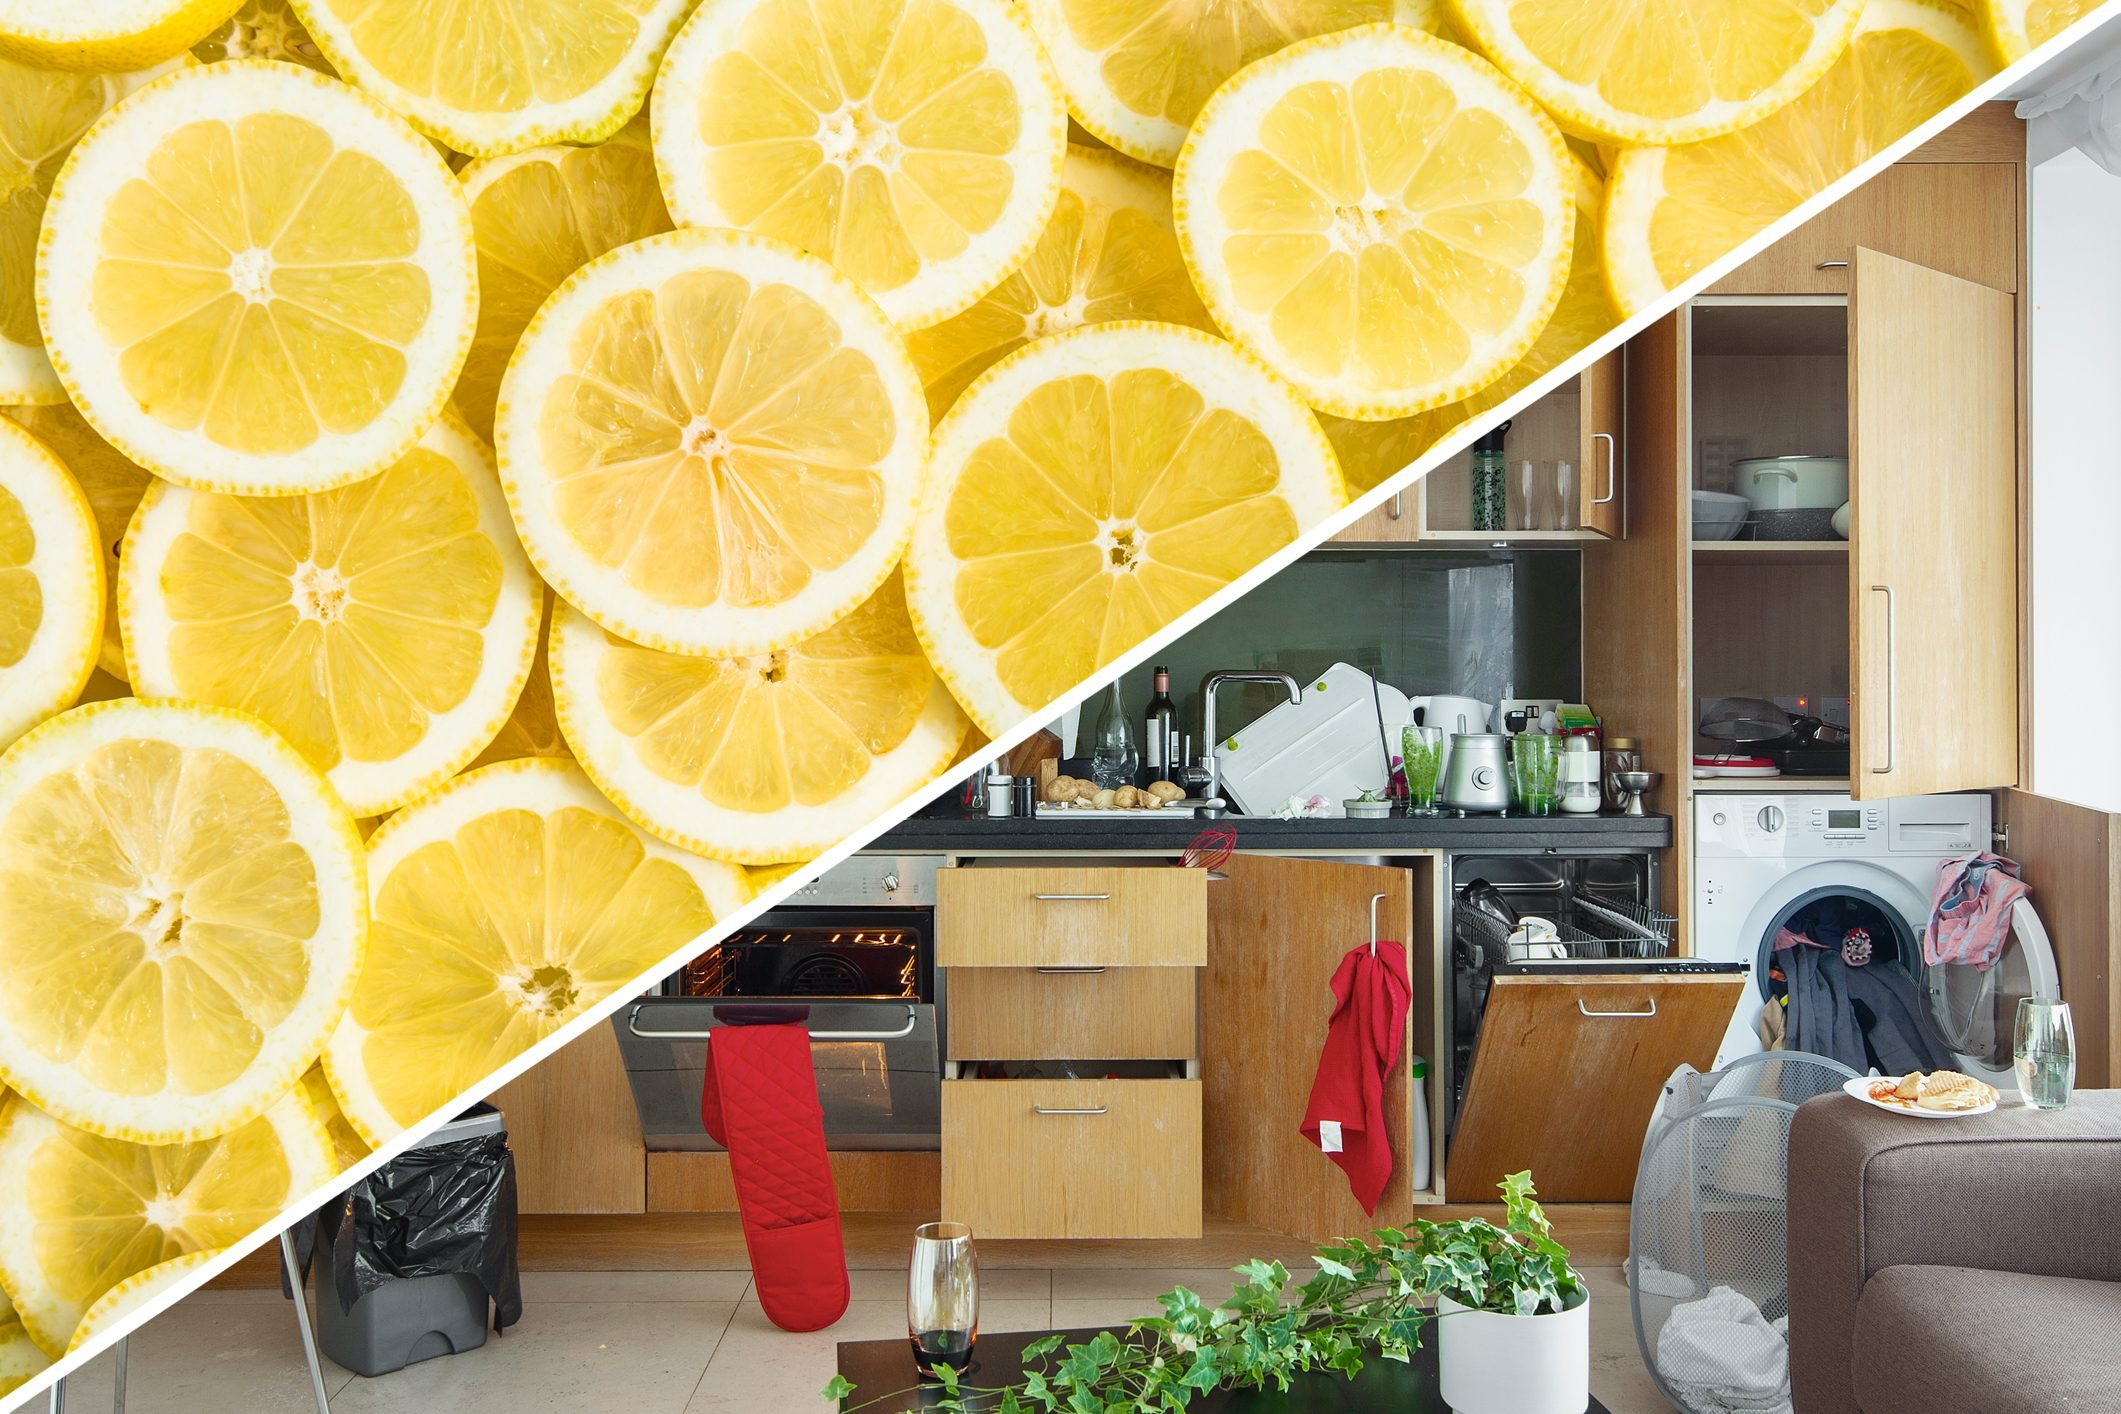 messy kitchen odor lemon uses